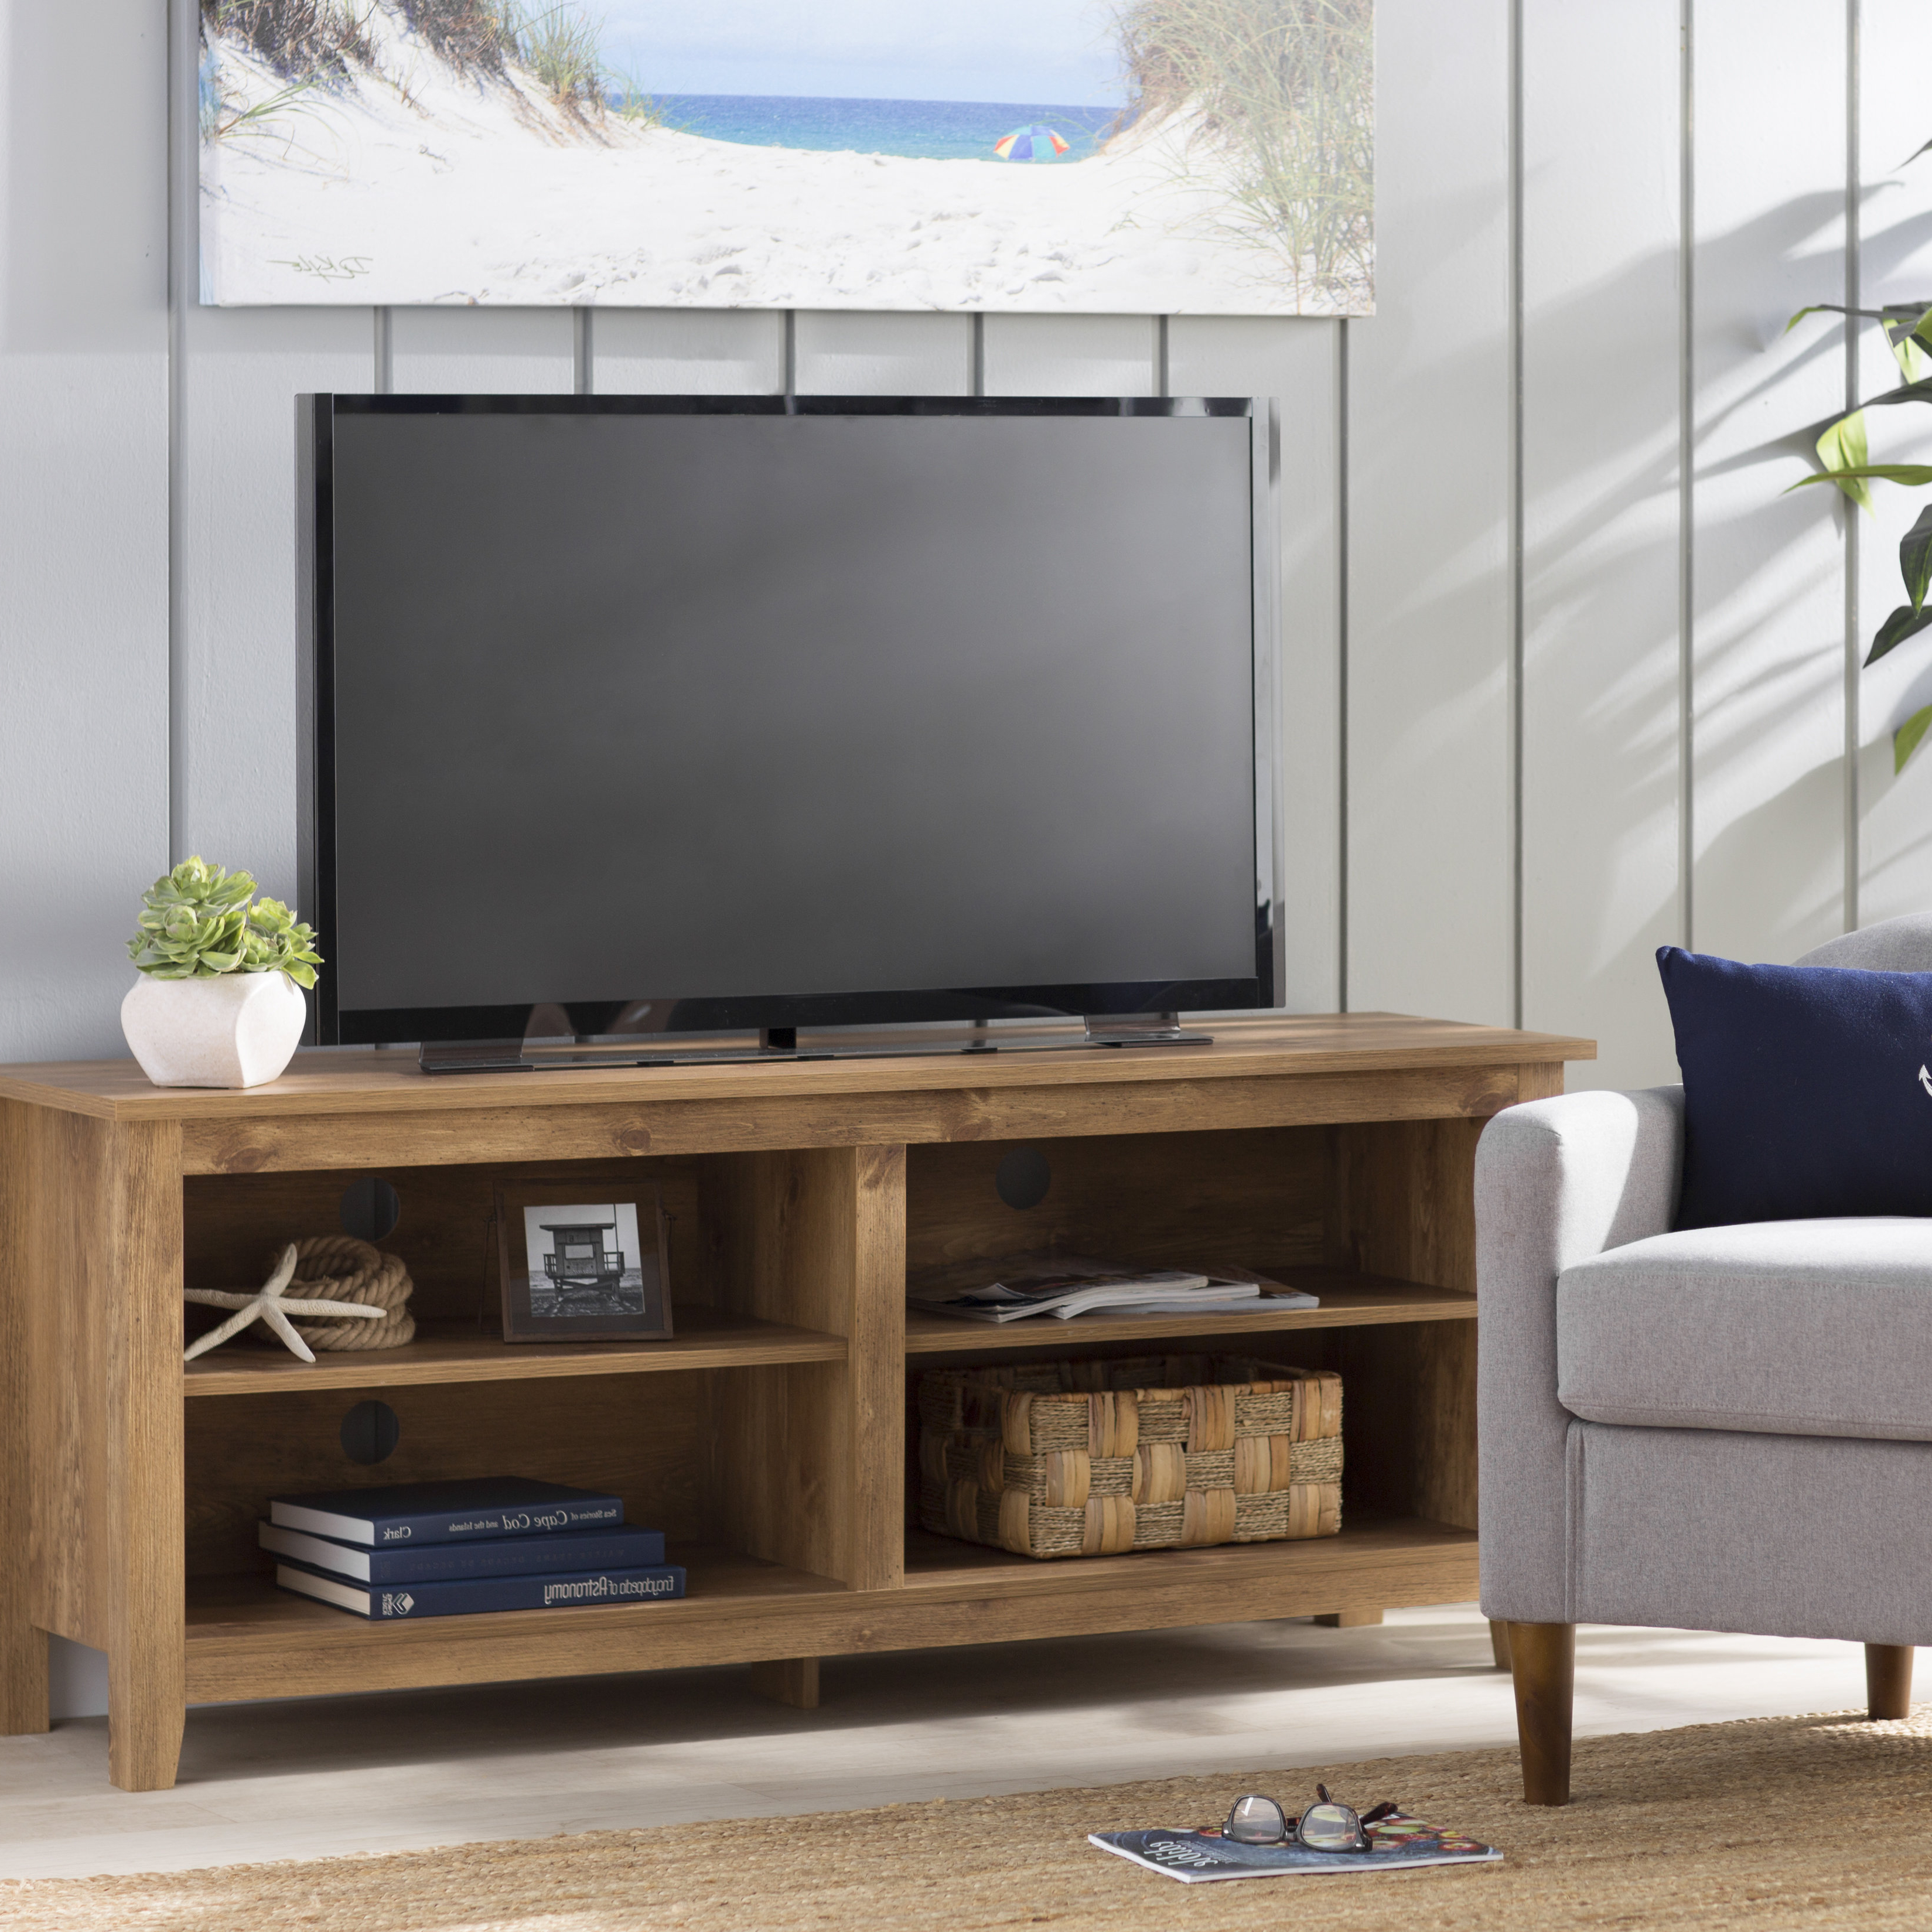 Wayfair For Tv Stands For Tube Tvs (View 17 of 20)